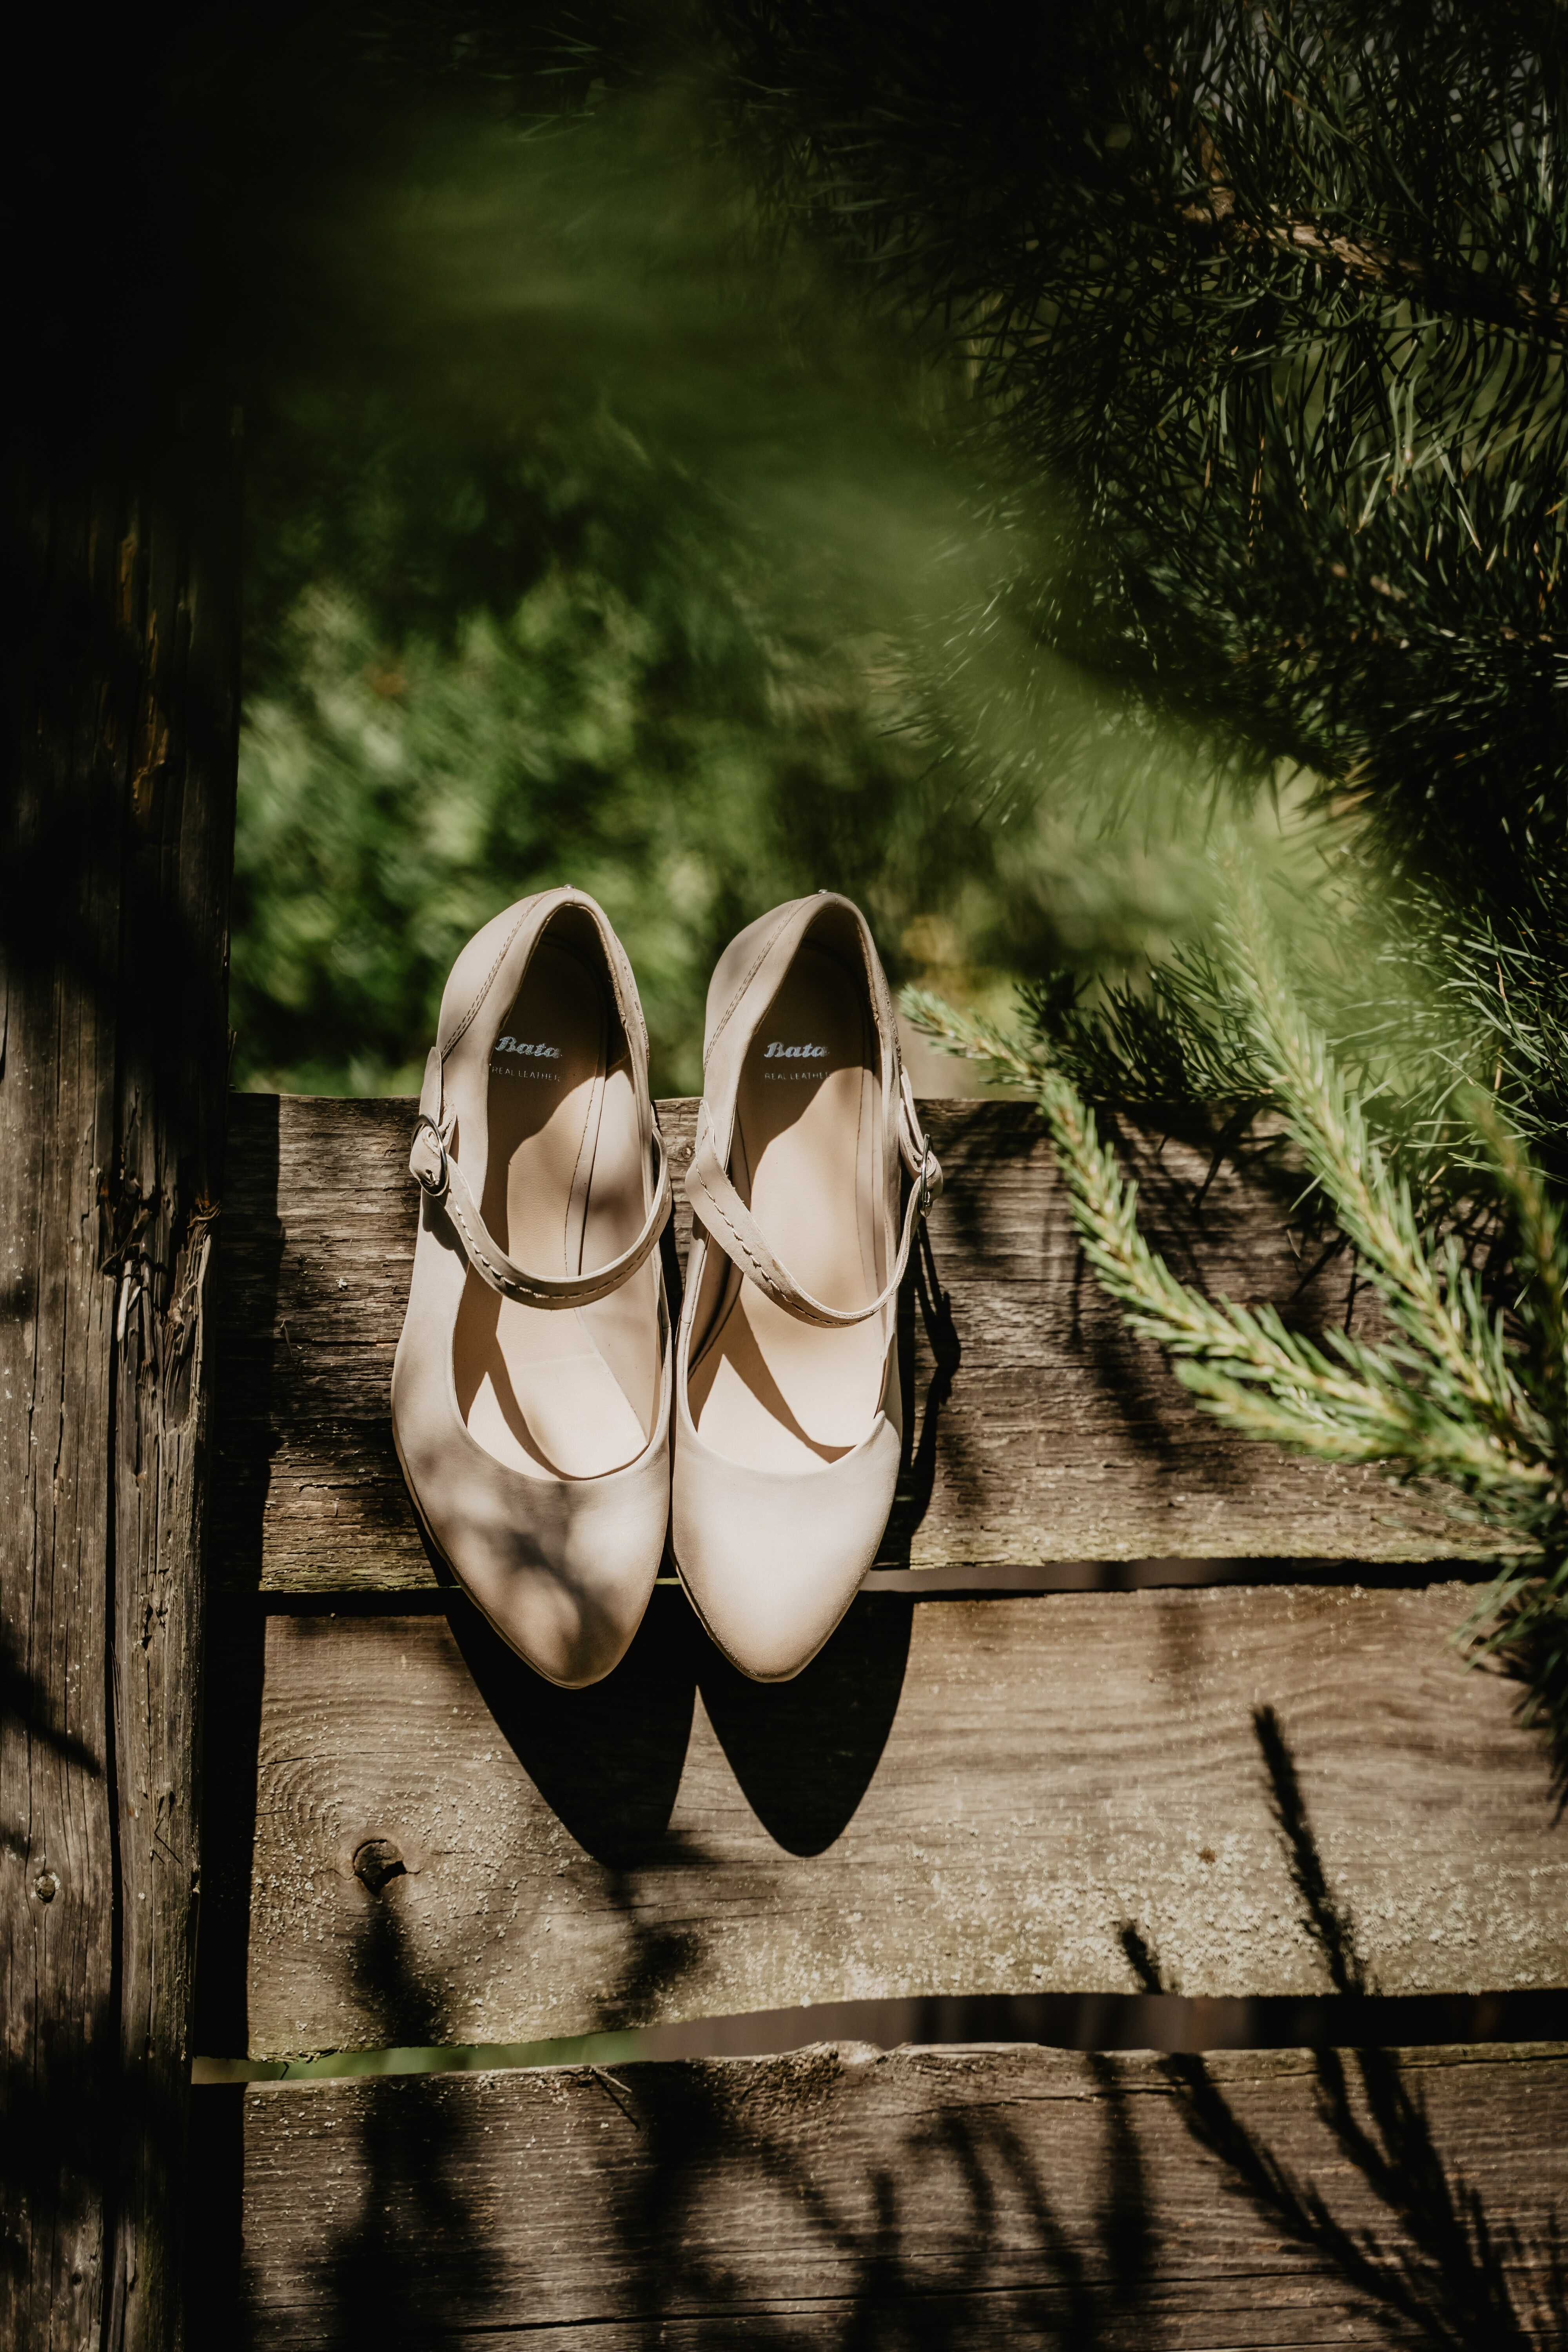 a white heel with mary jane style